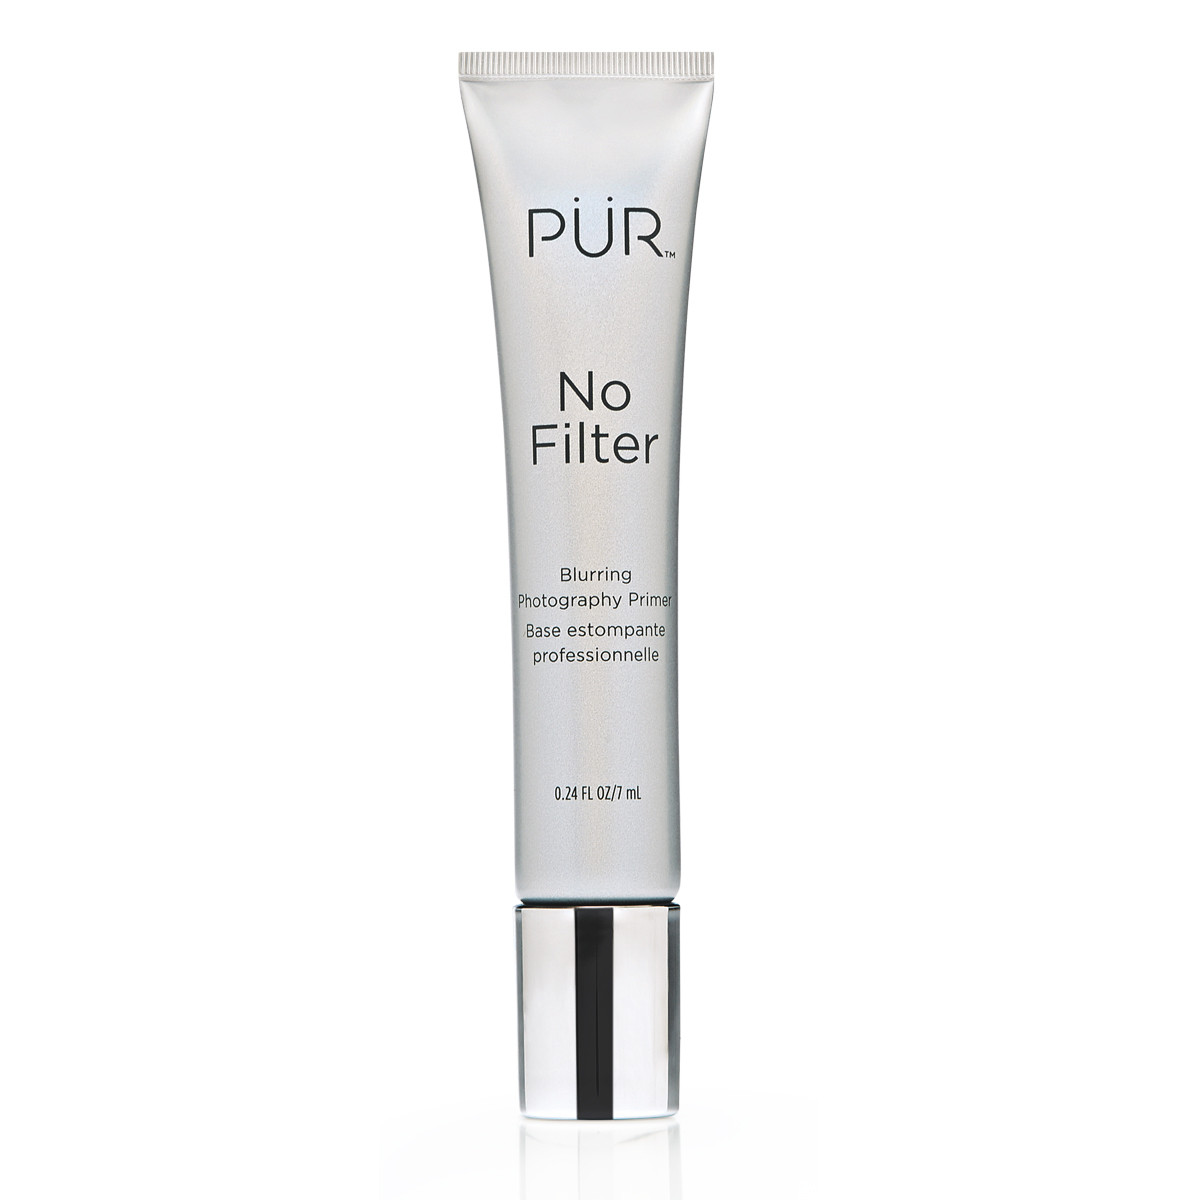 PUR No Filter Blurring Photography Primer